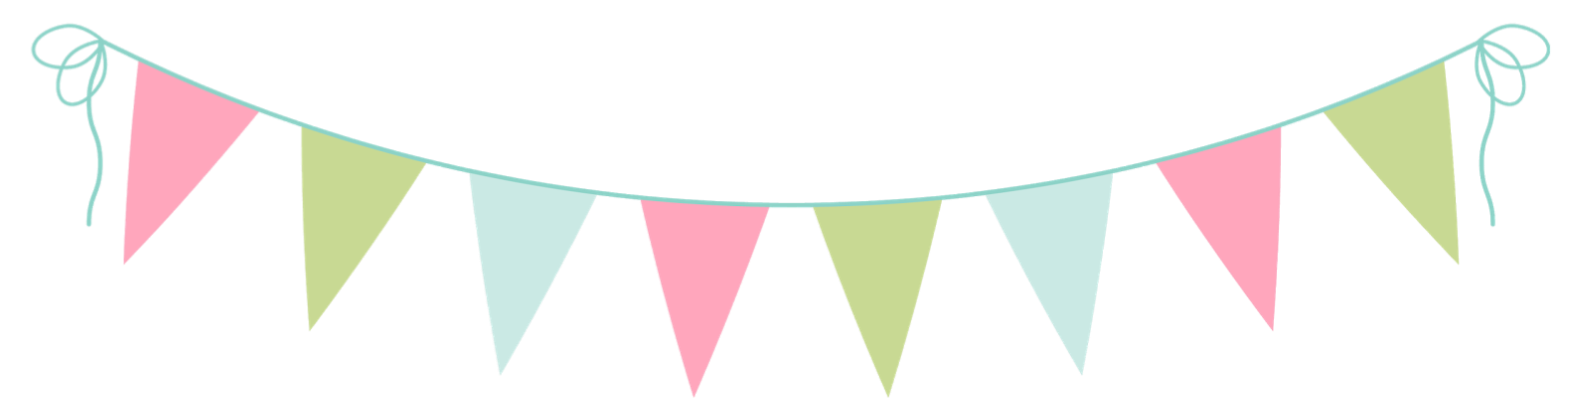 Chalkboard Pennant Cliparts.